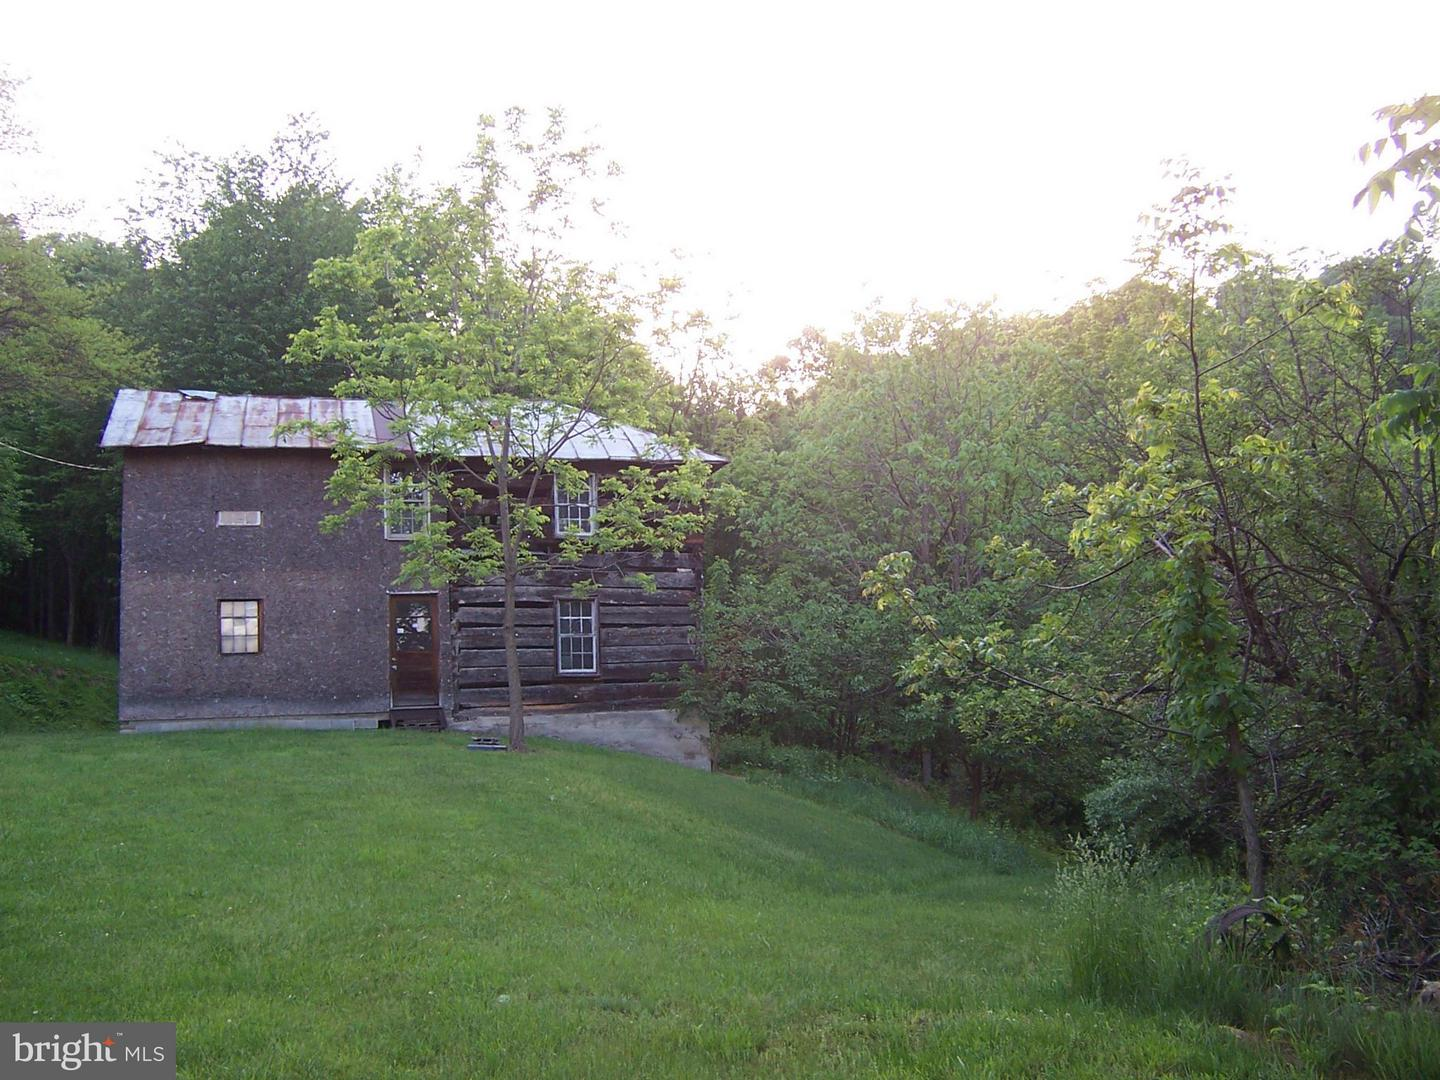 Land for Sale at Mtn View Rd Purgitsville, West Virginia 26845 United States